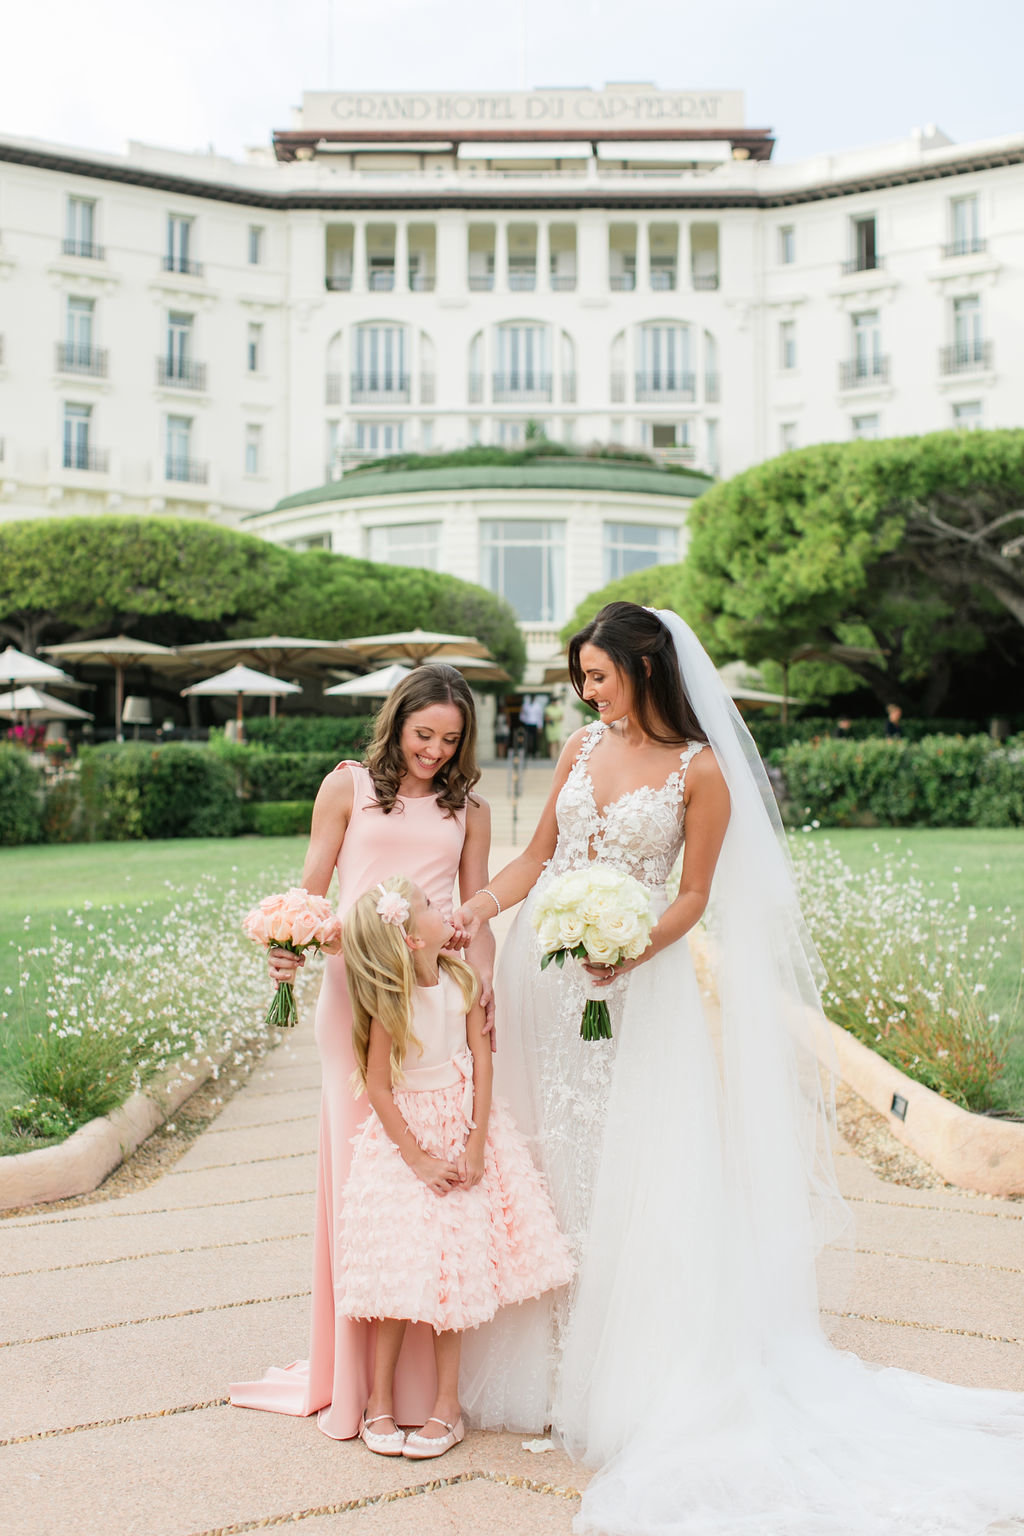 grand-hotel-cap-ferrat-france-wedding-photographer-roberta-facchini-photography-321